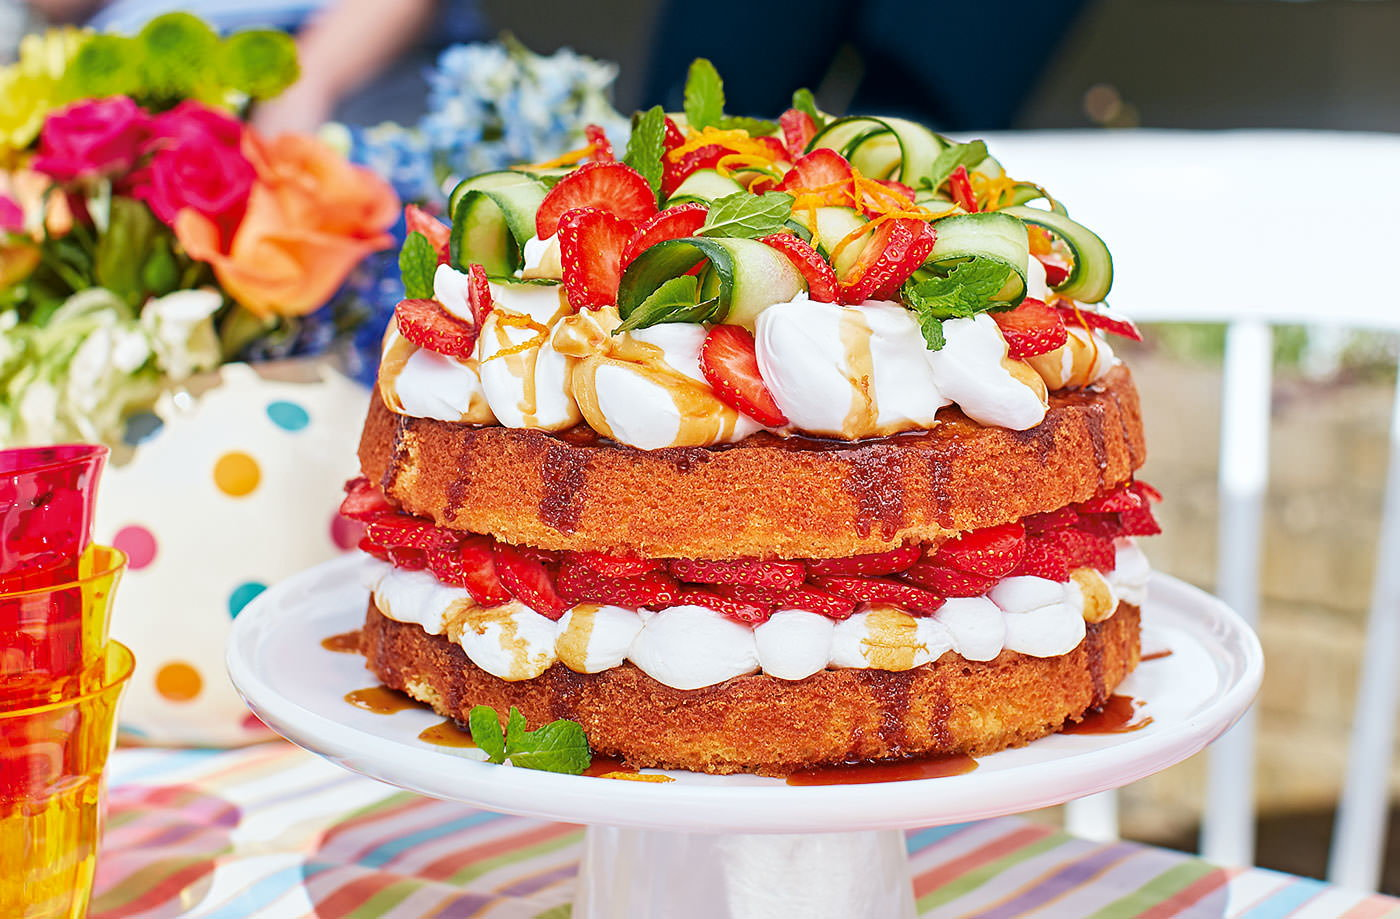 Tesco Pimms Layer Cake